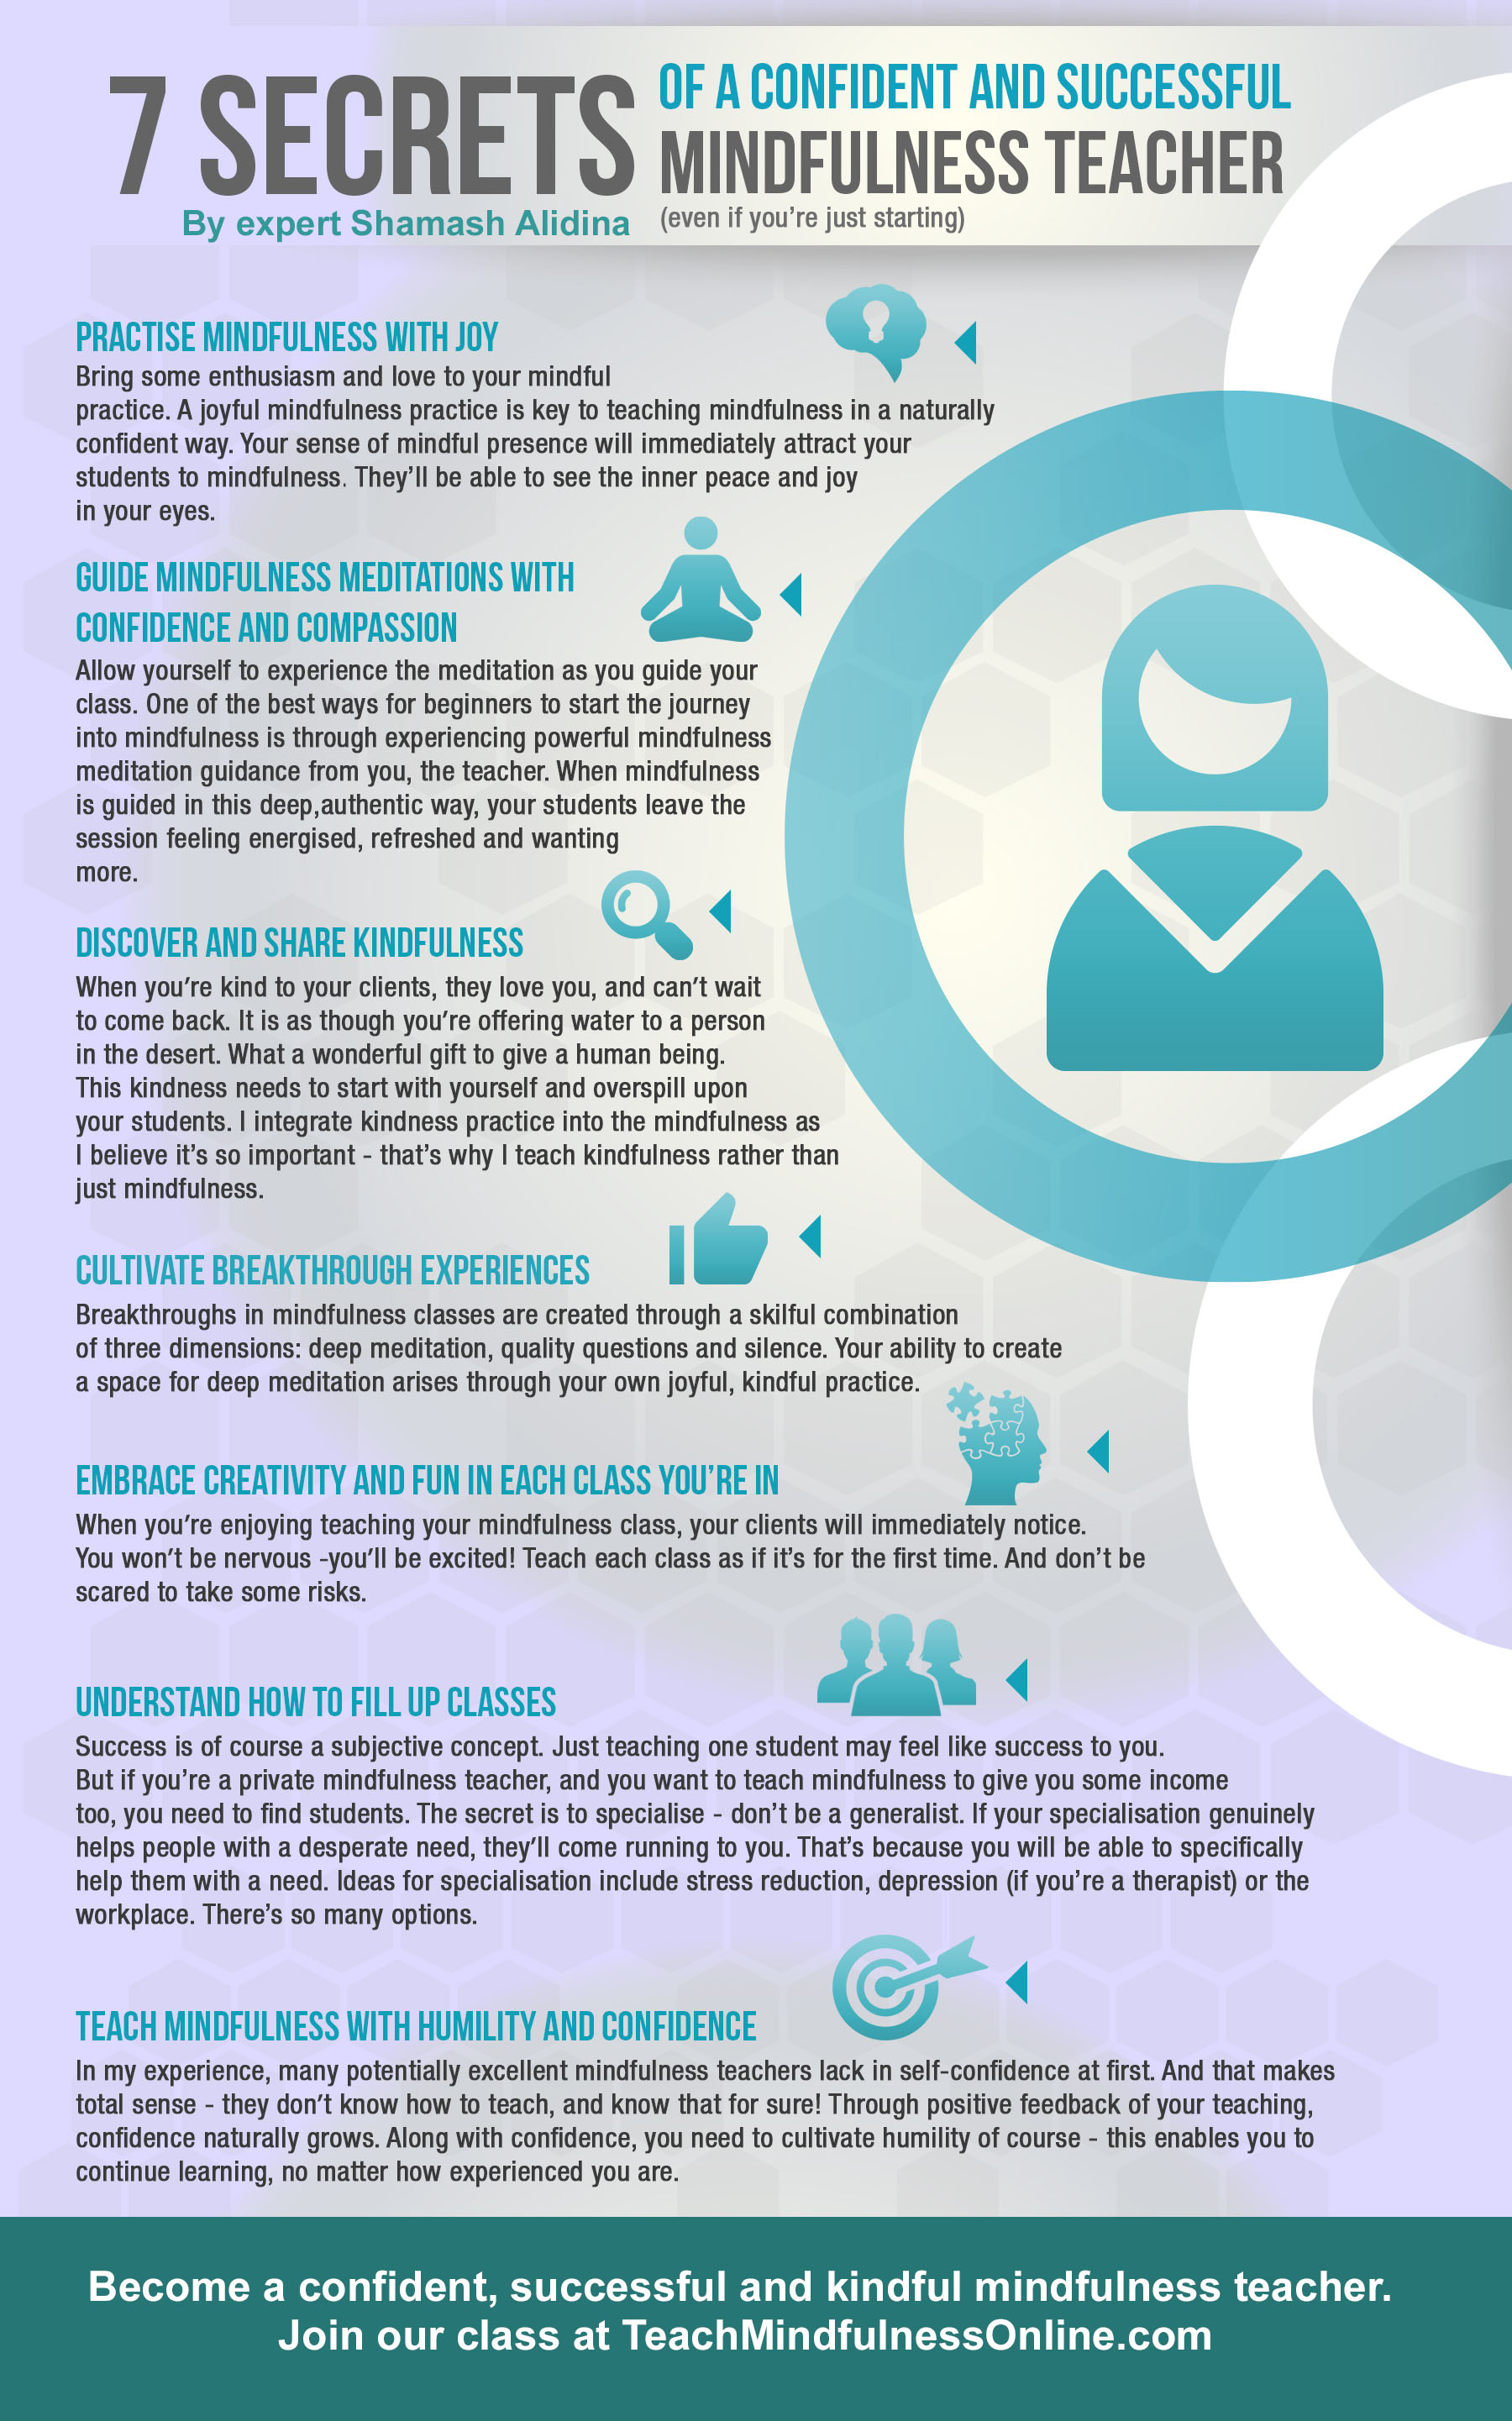 Please share this infographic with your friends - becoming a better teacher is something we all strive for